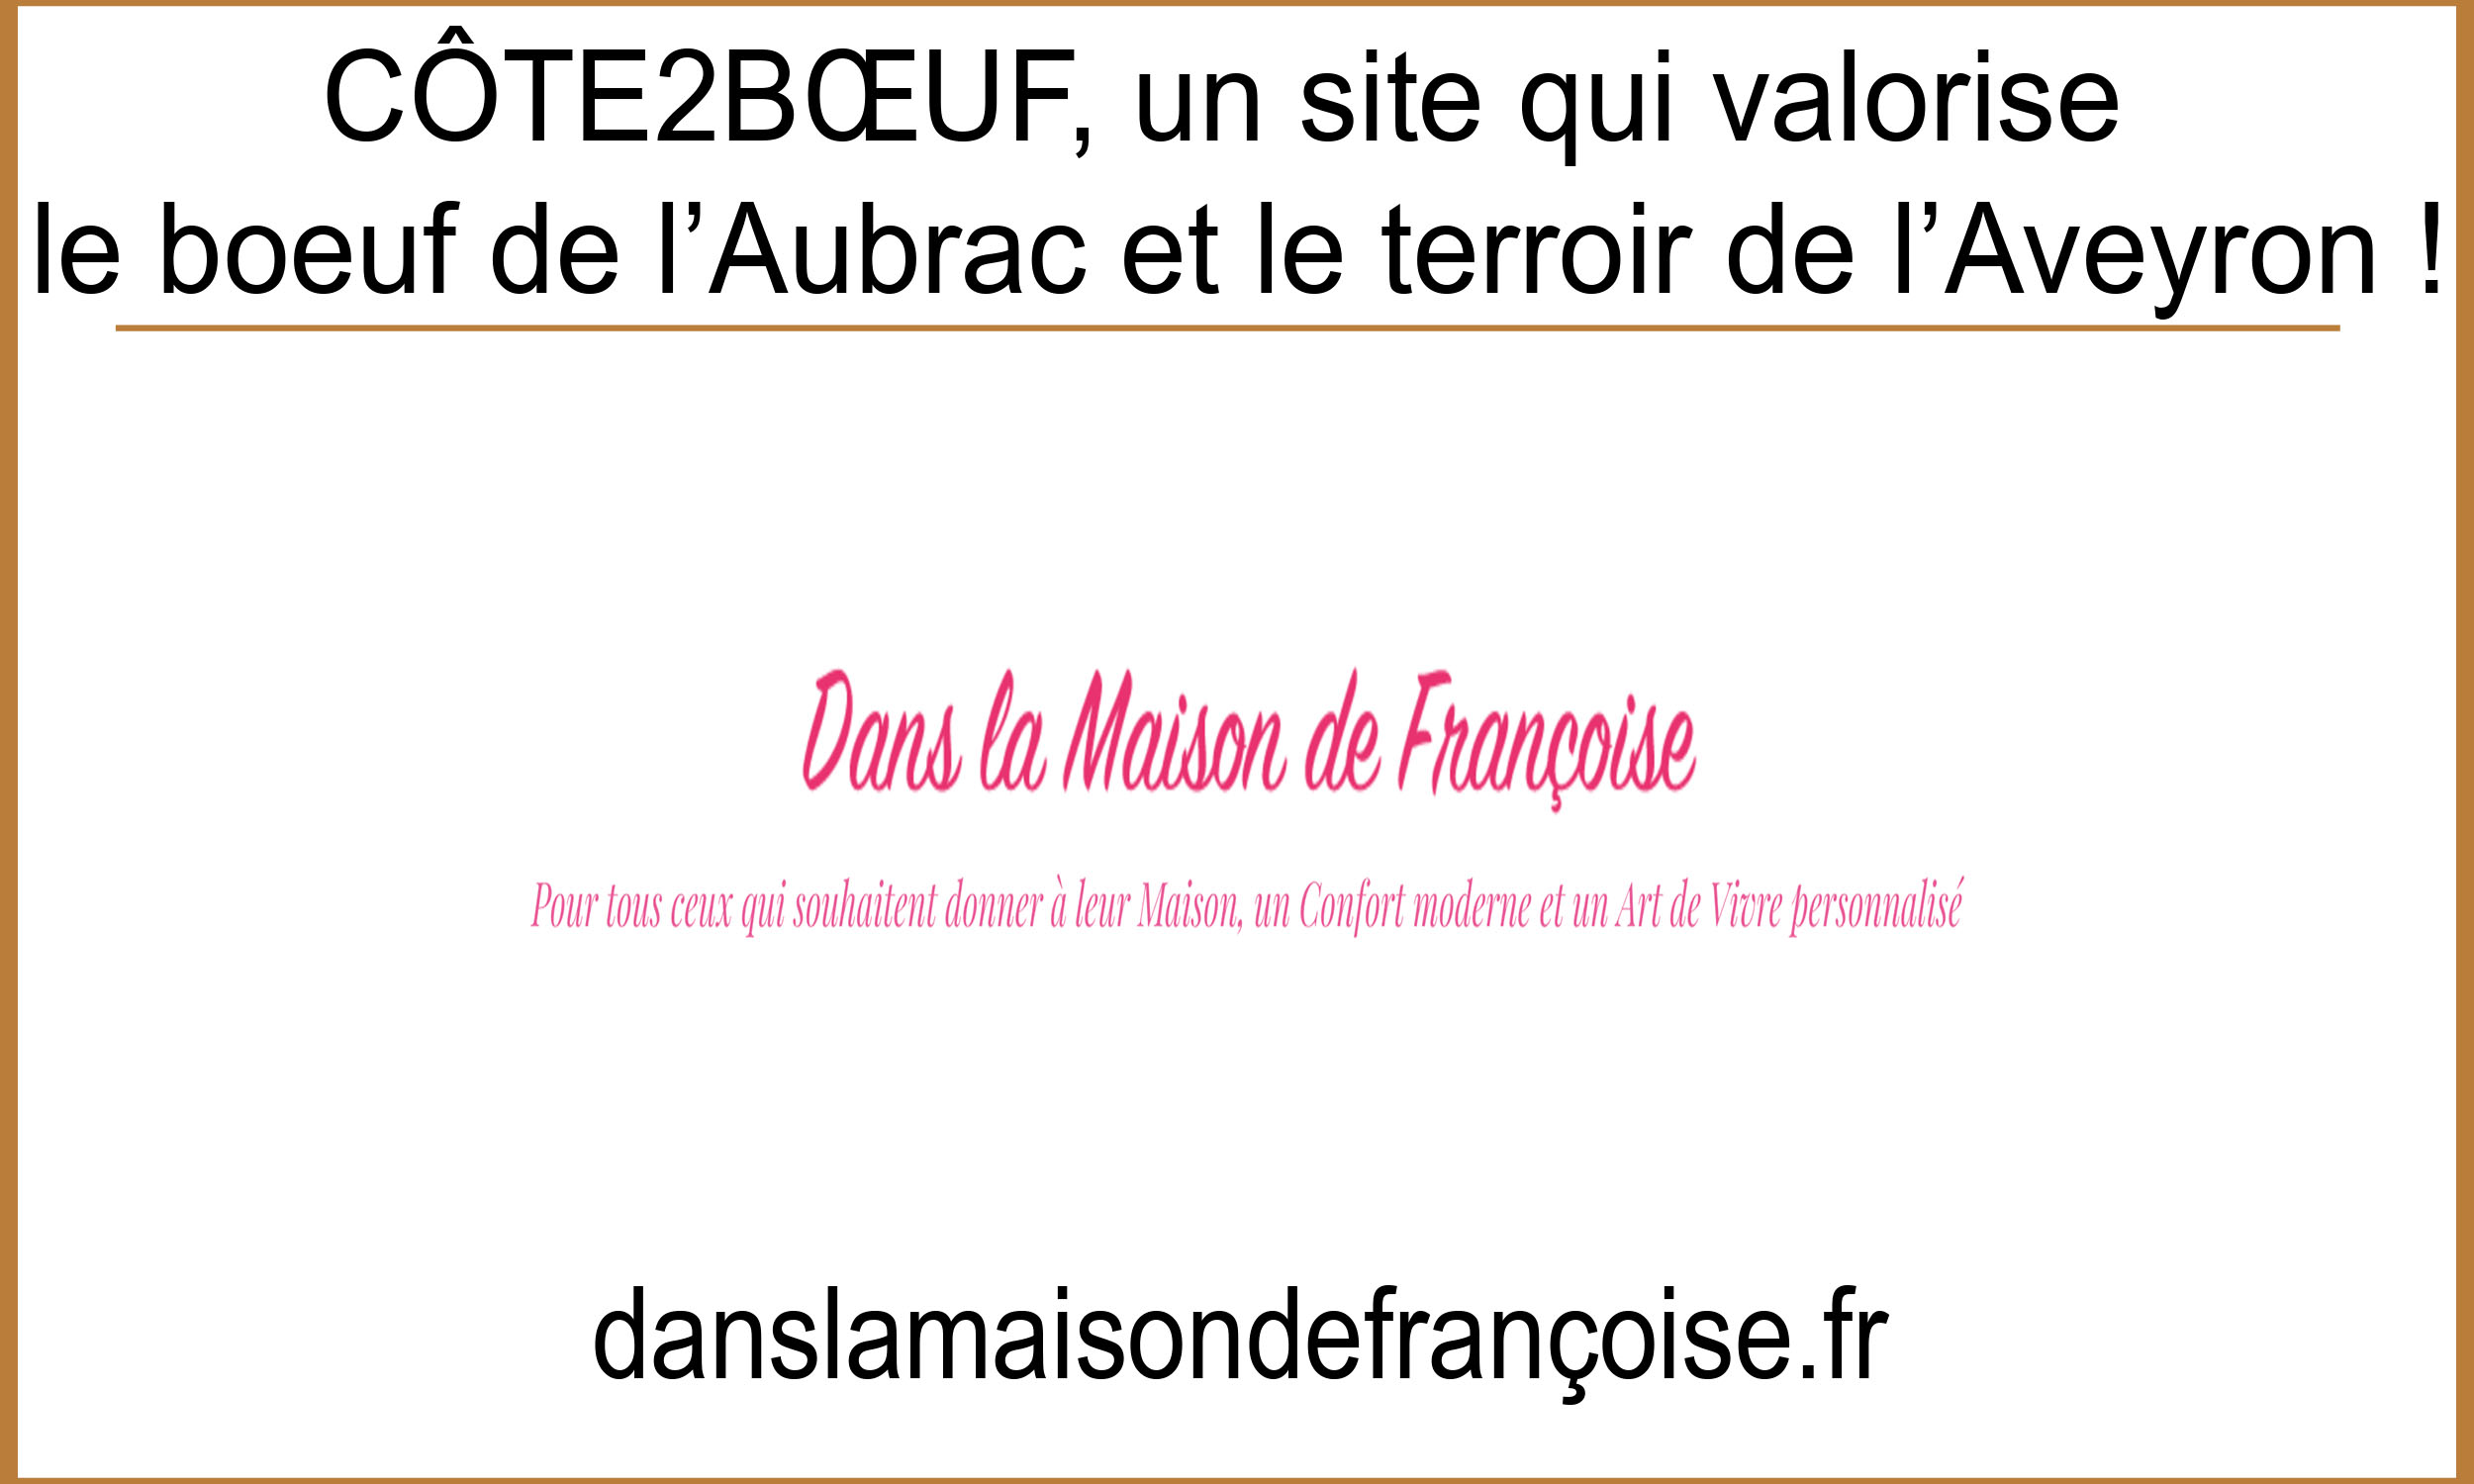 Article ds la maison de françoise